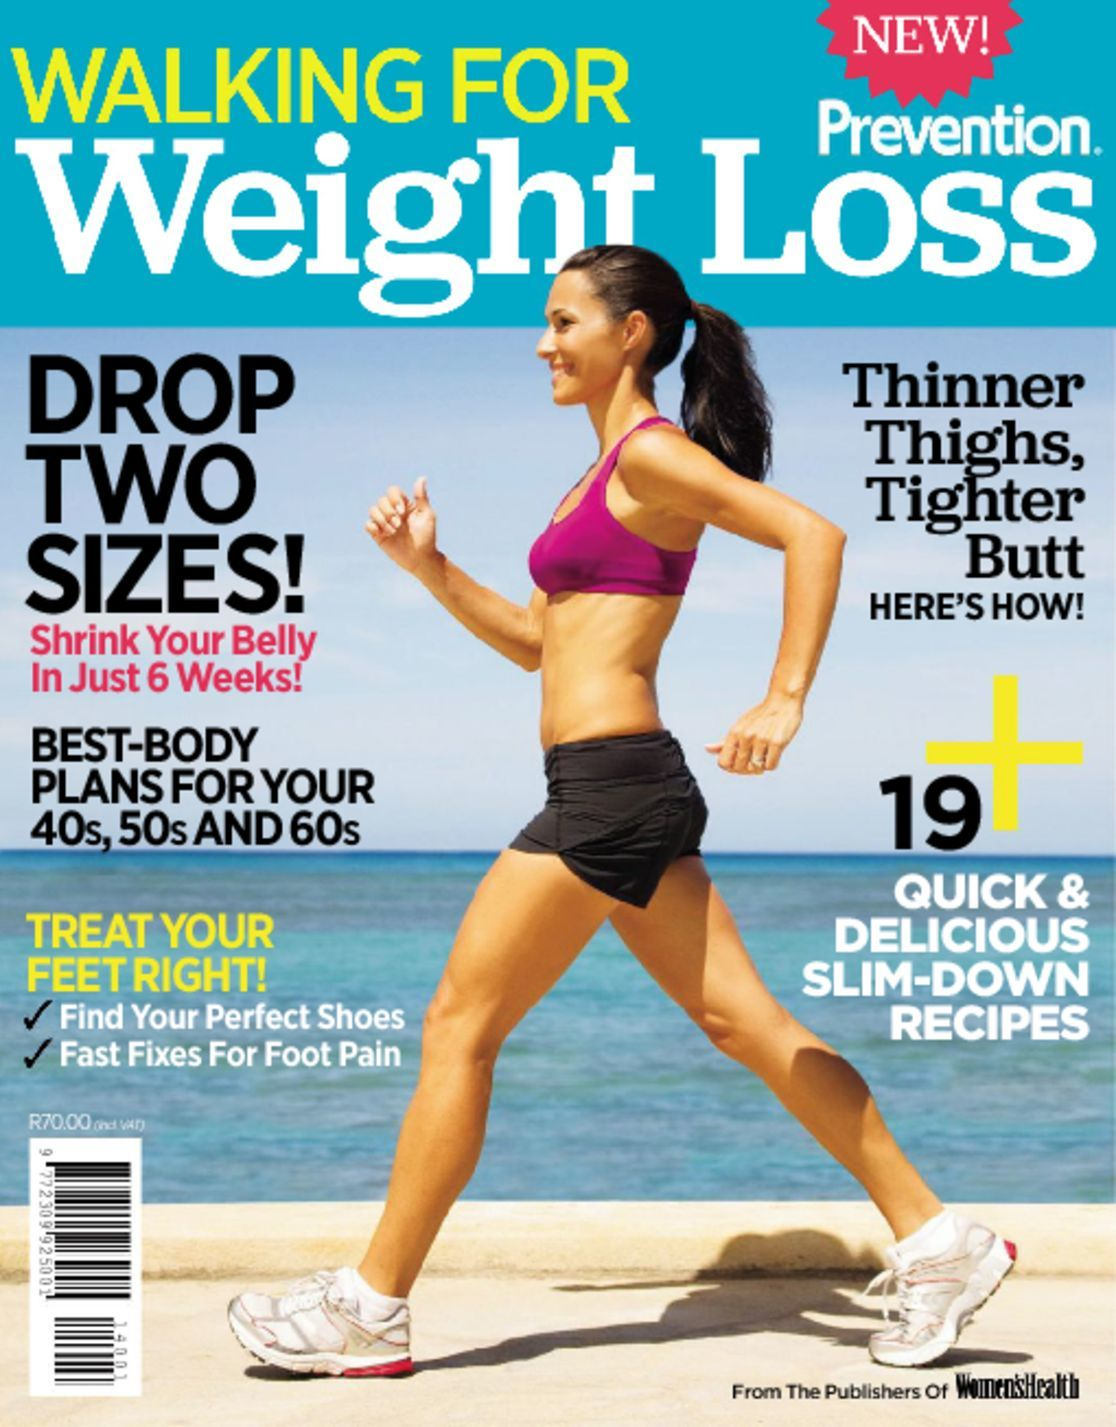 Prevention Special Edition Walking for Weight Loss Digital